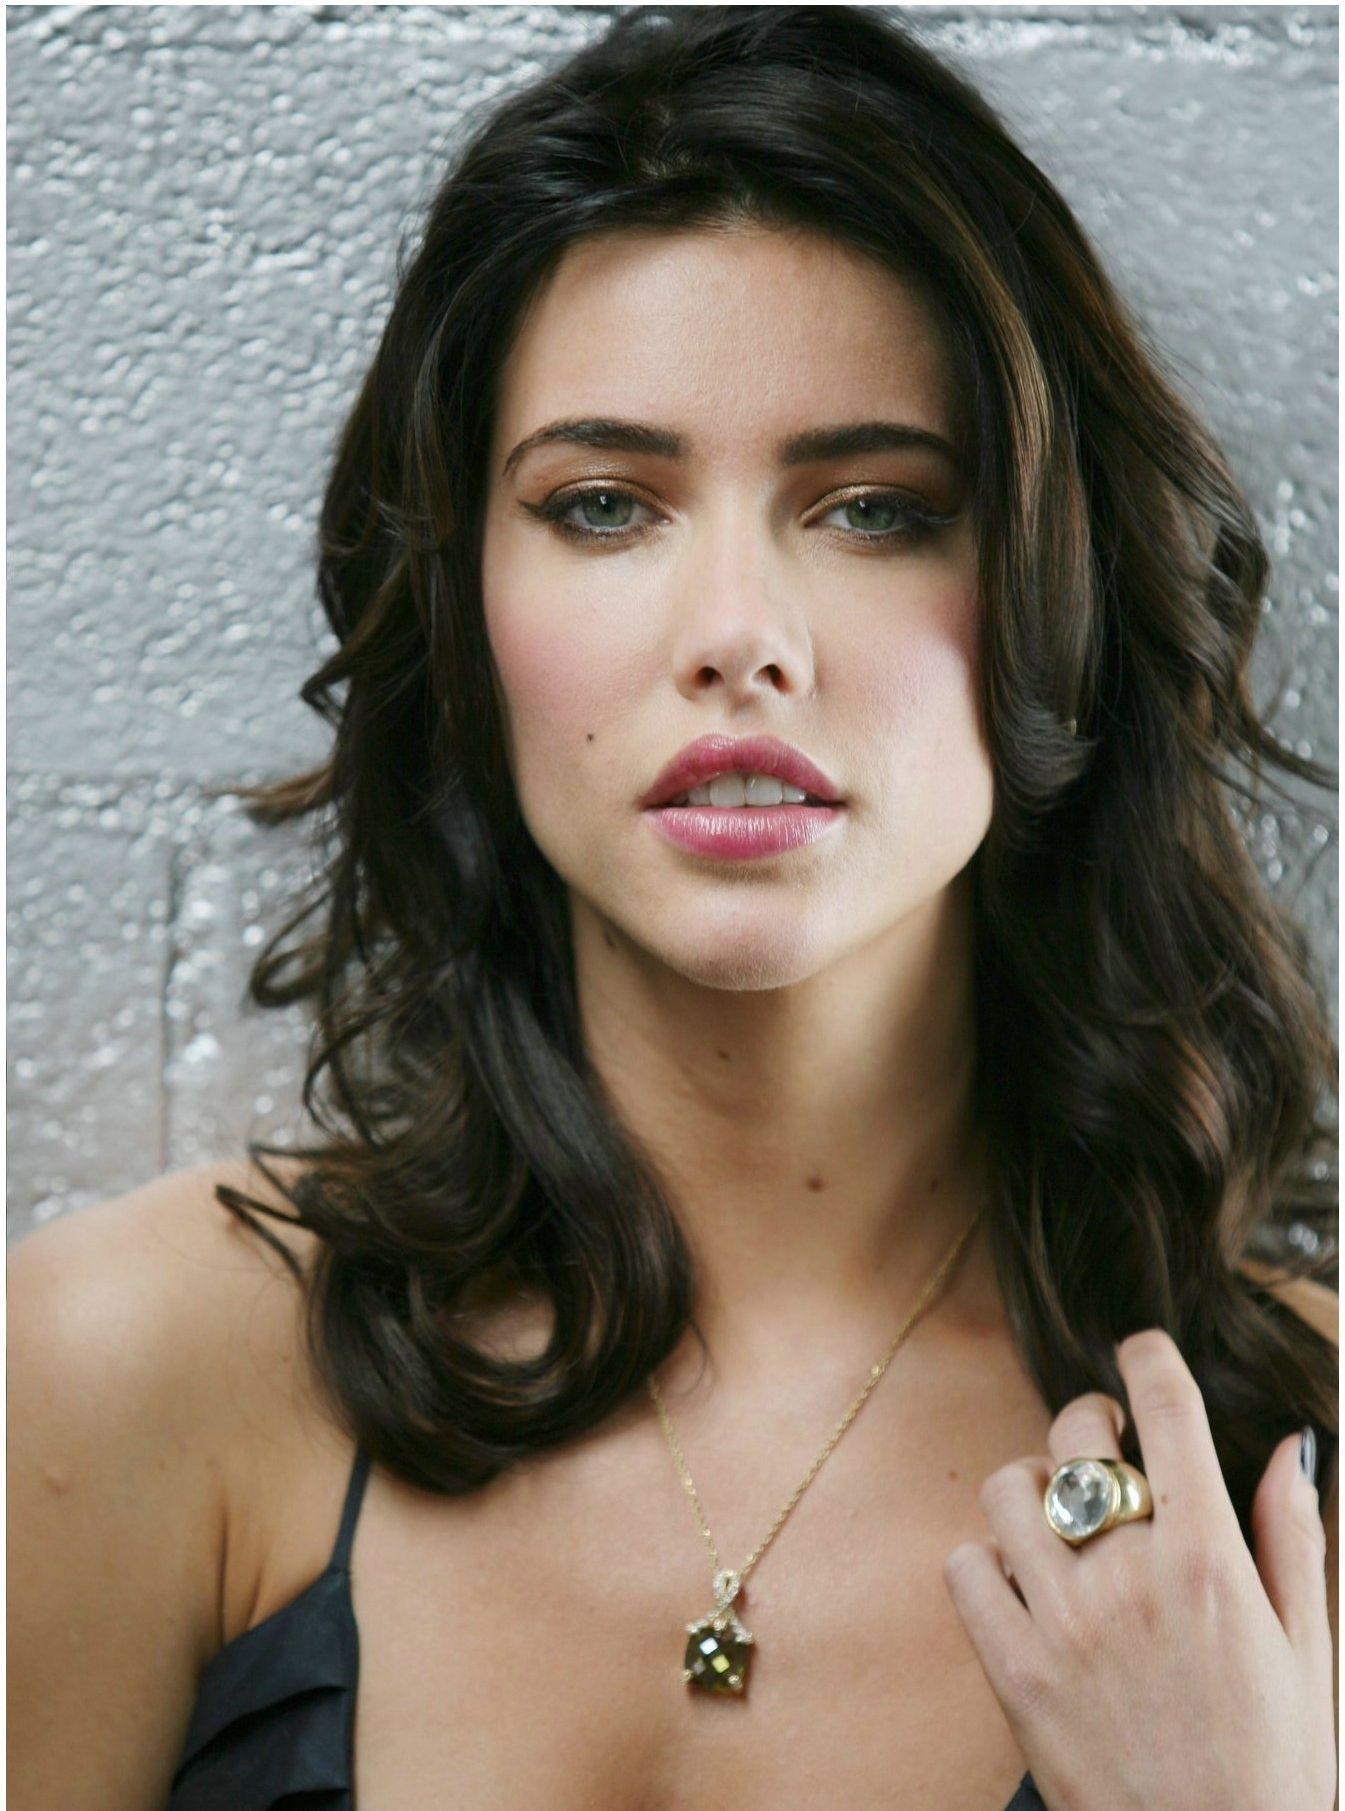 jacqueline macinnes wood wallpaperjacqueline macinnes wood gif, jacqueline macinnes wood final destination 5, jacqueline macinnes wood forum, jacqueline macinnes wood wallpaper, jacqueline macinnes wood after hours, jacqueline macinnes wood leather, jacqueline macinnes wood instagram, jacqueline macinnes wood boyfriend, jacqueline macinnes wood photo, jacqueline macinnes wood, jacqueline macinnes wood arrow, jacqueline macinnes wood facebook, jacqueline macinnes wood and daren kagasoff, jacqueline macinnes wood imdb, jacqueline macinnes wood married, jacqueline macinnes wood plastic surgery, jacqueline macinnes wood net worth, jacqueline macinnes wood twitter, jacqueline macinnes wood rifatta, jacqueline macinnes wood 2015